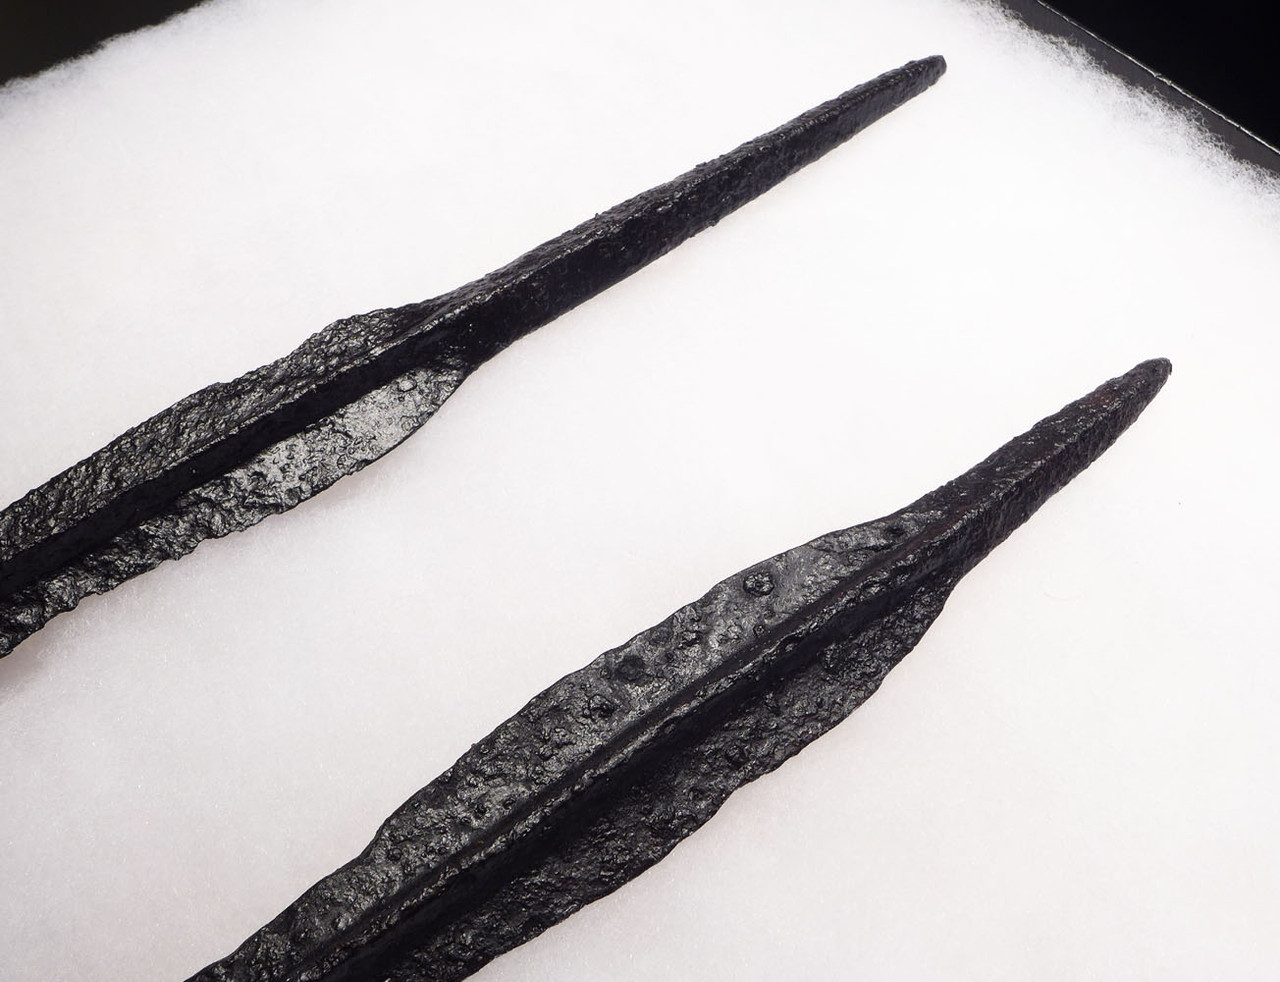 RARE MATCHED PAIR OF ANCIENT ROMAN BYZANTINE CAVALRY ARMOR-PIERCING LANCE SPEARHEADS *BYZR019